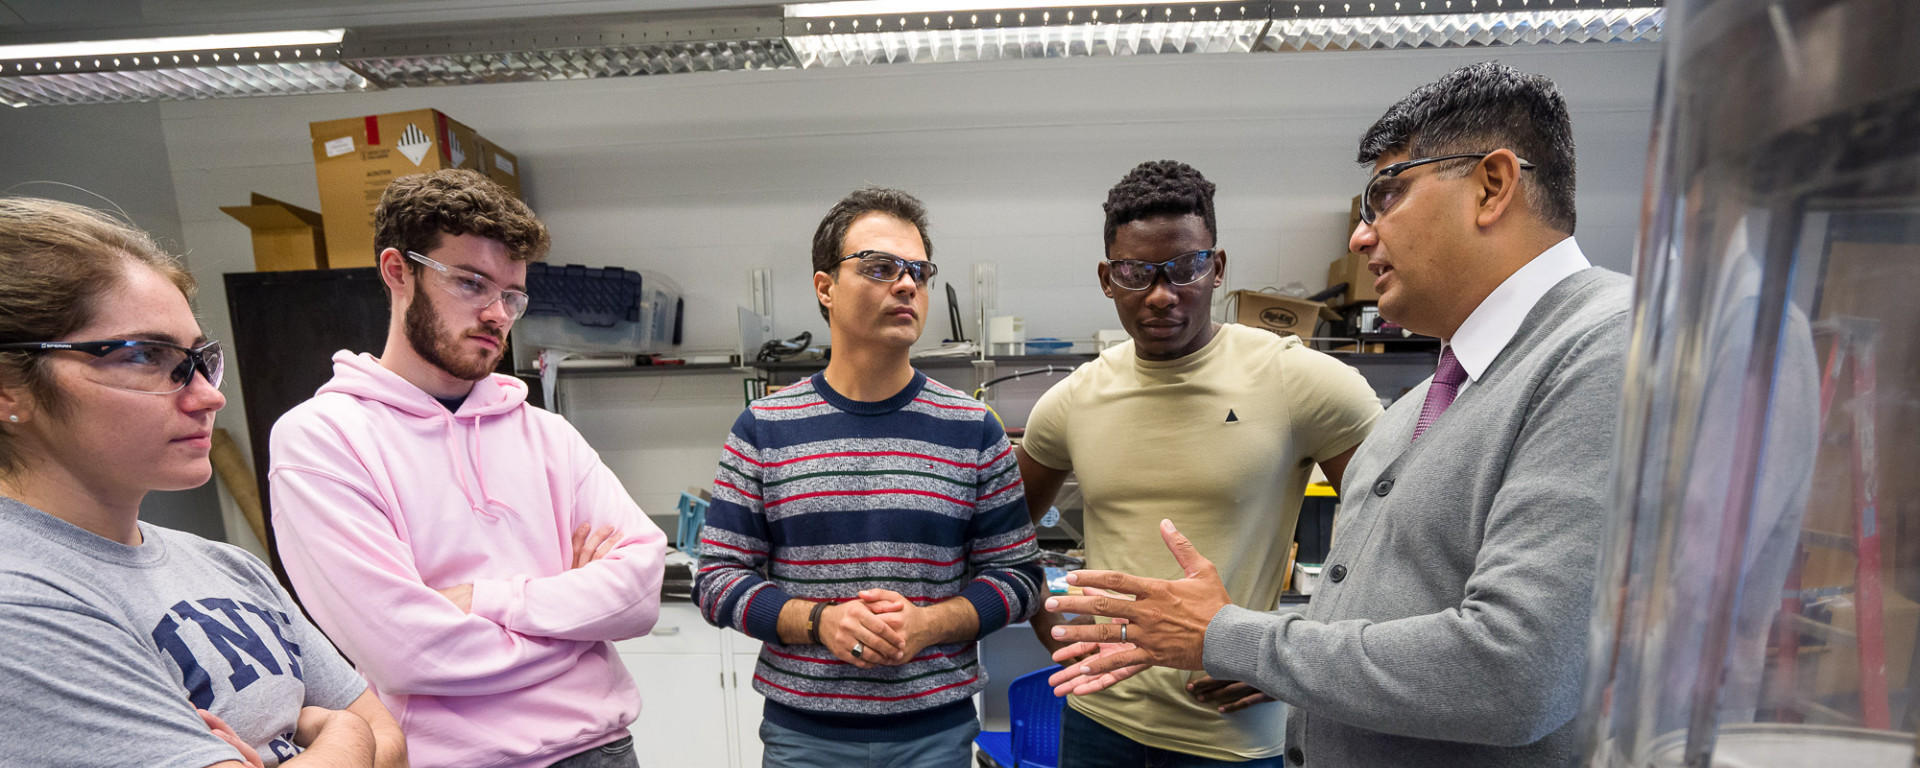 David Eshan with students in lab